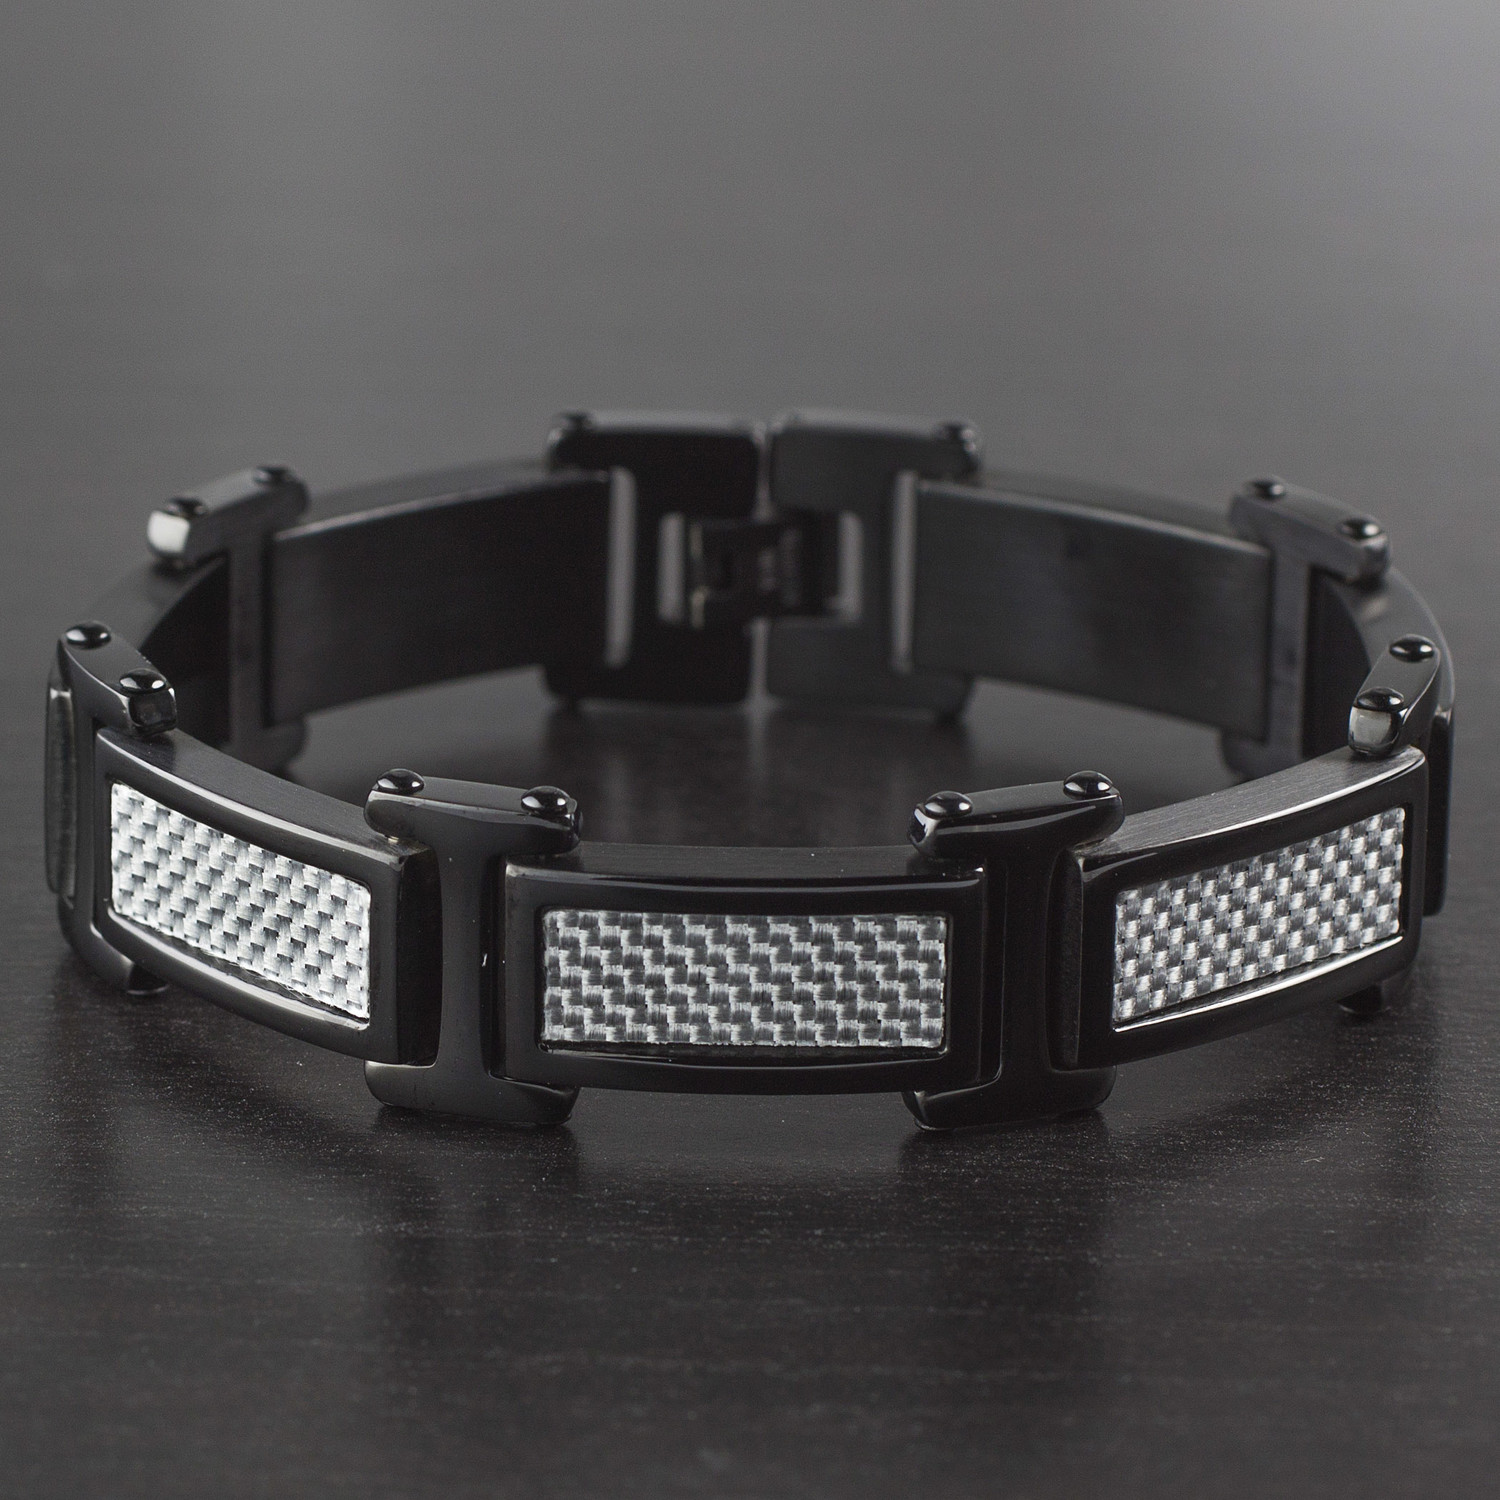 Carbon Fiber Diamontrigue Jewelry: Polished Carbon Fiber Inlay Link Bracelet // Black + Gray